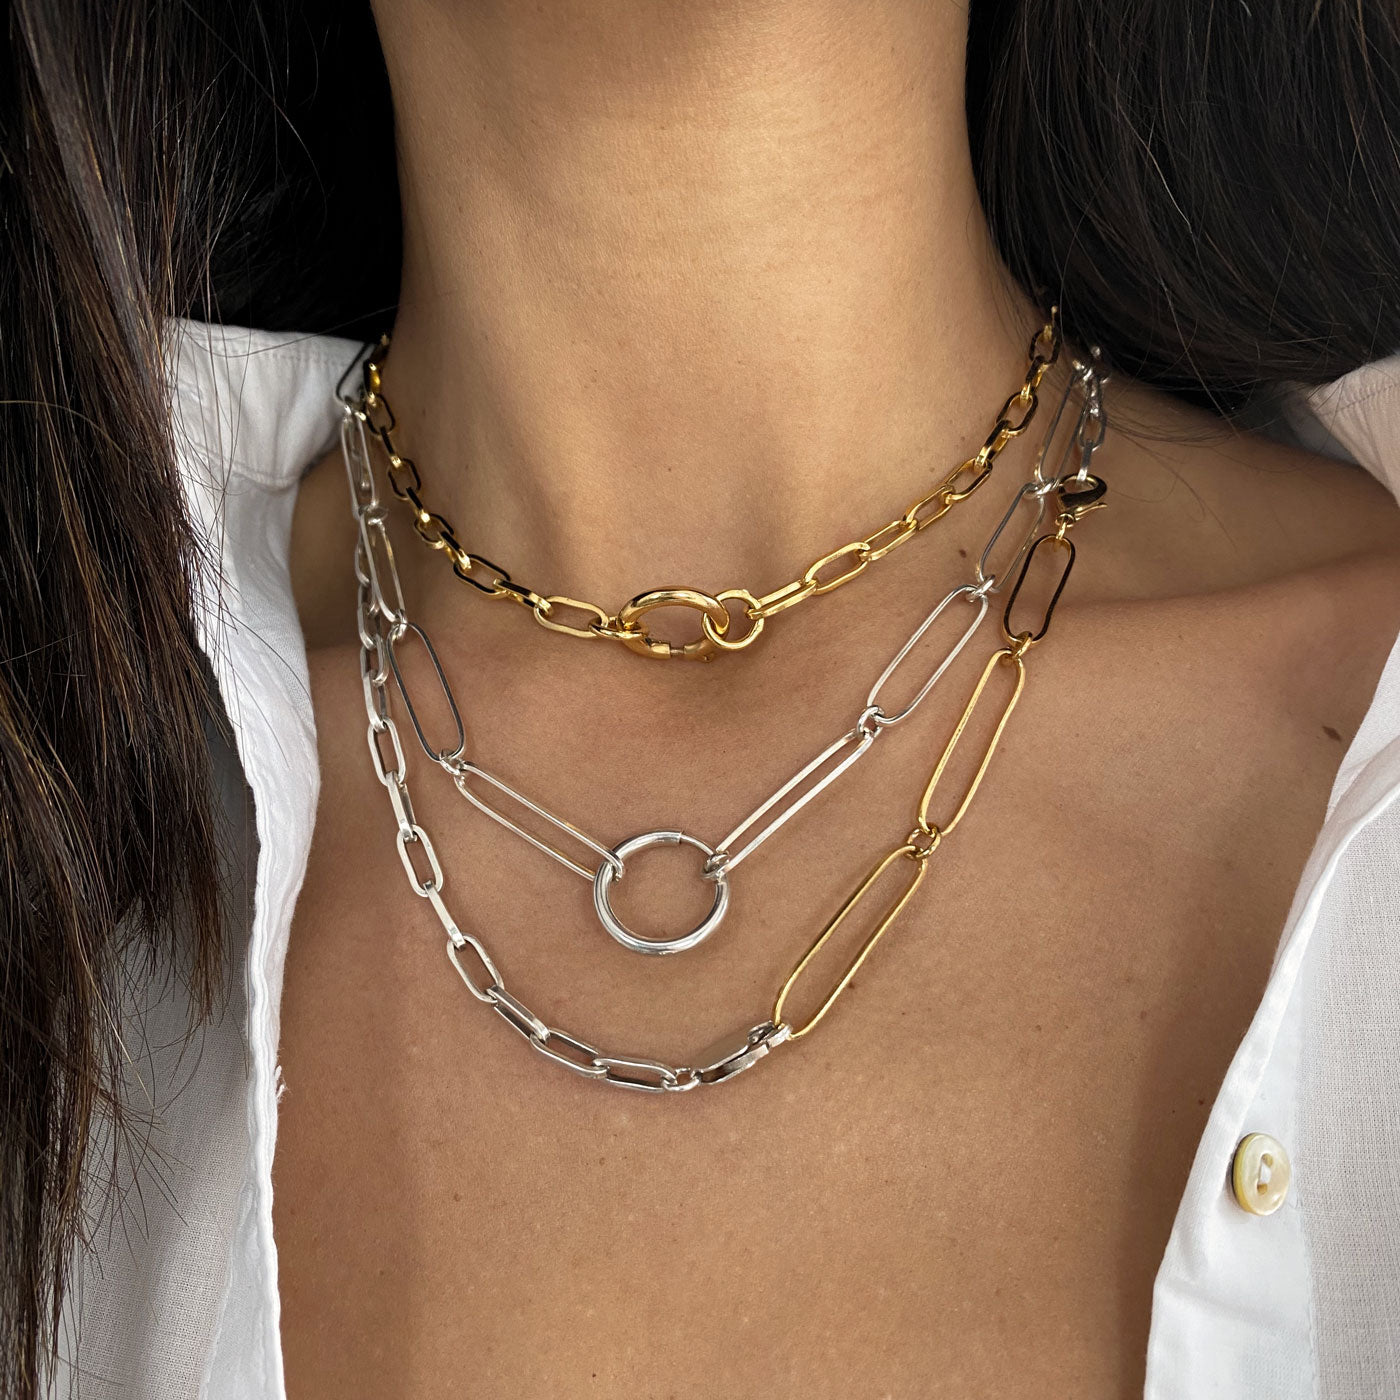 Mystic chain elongated silver 925 links colombian jewelry ana buendia, necklace layering, gold and silver